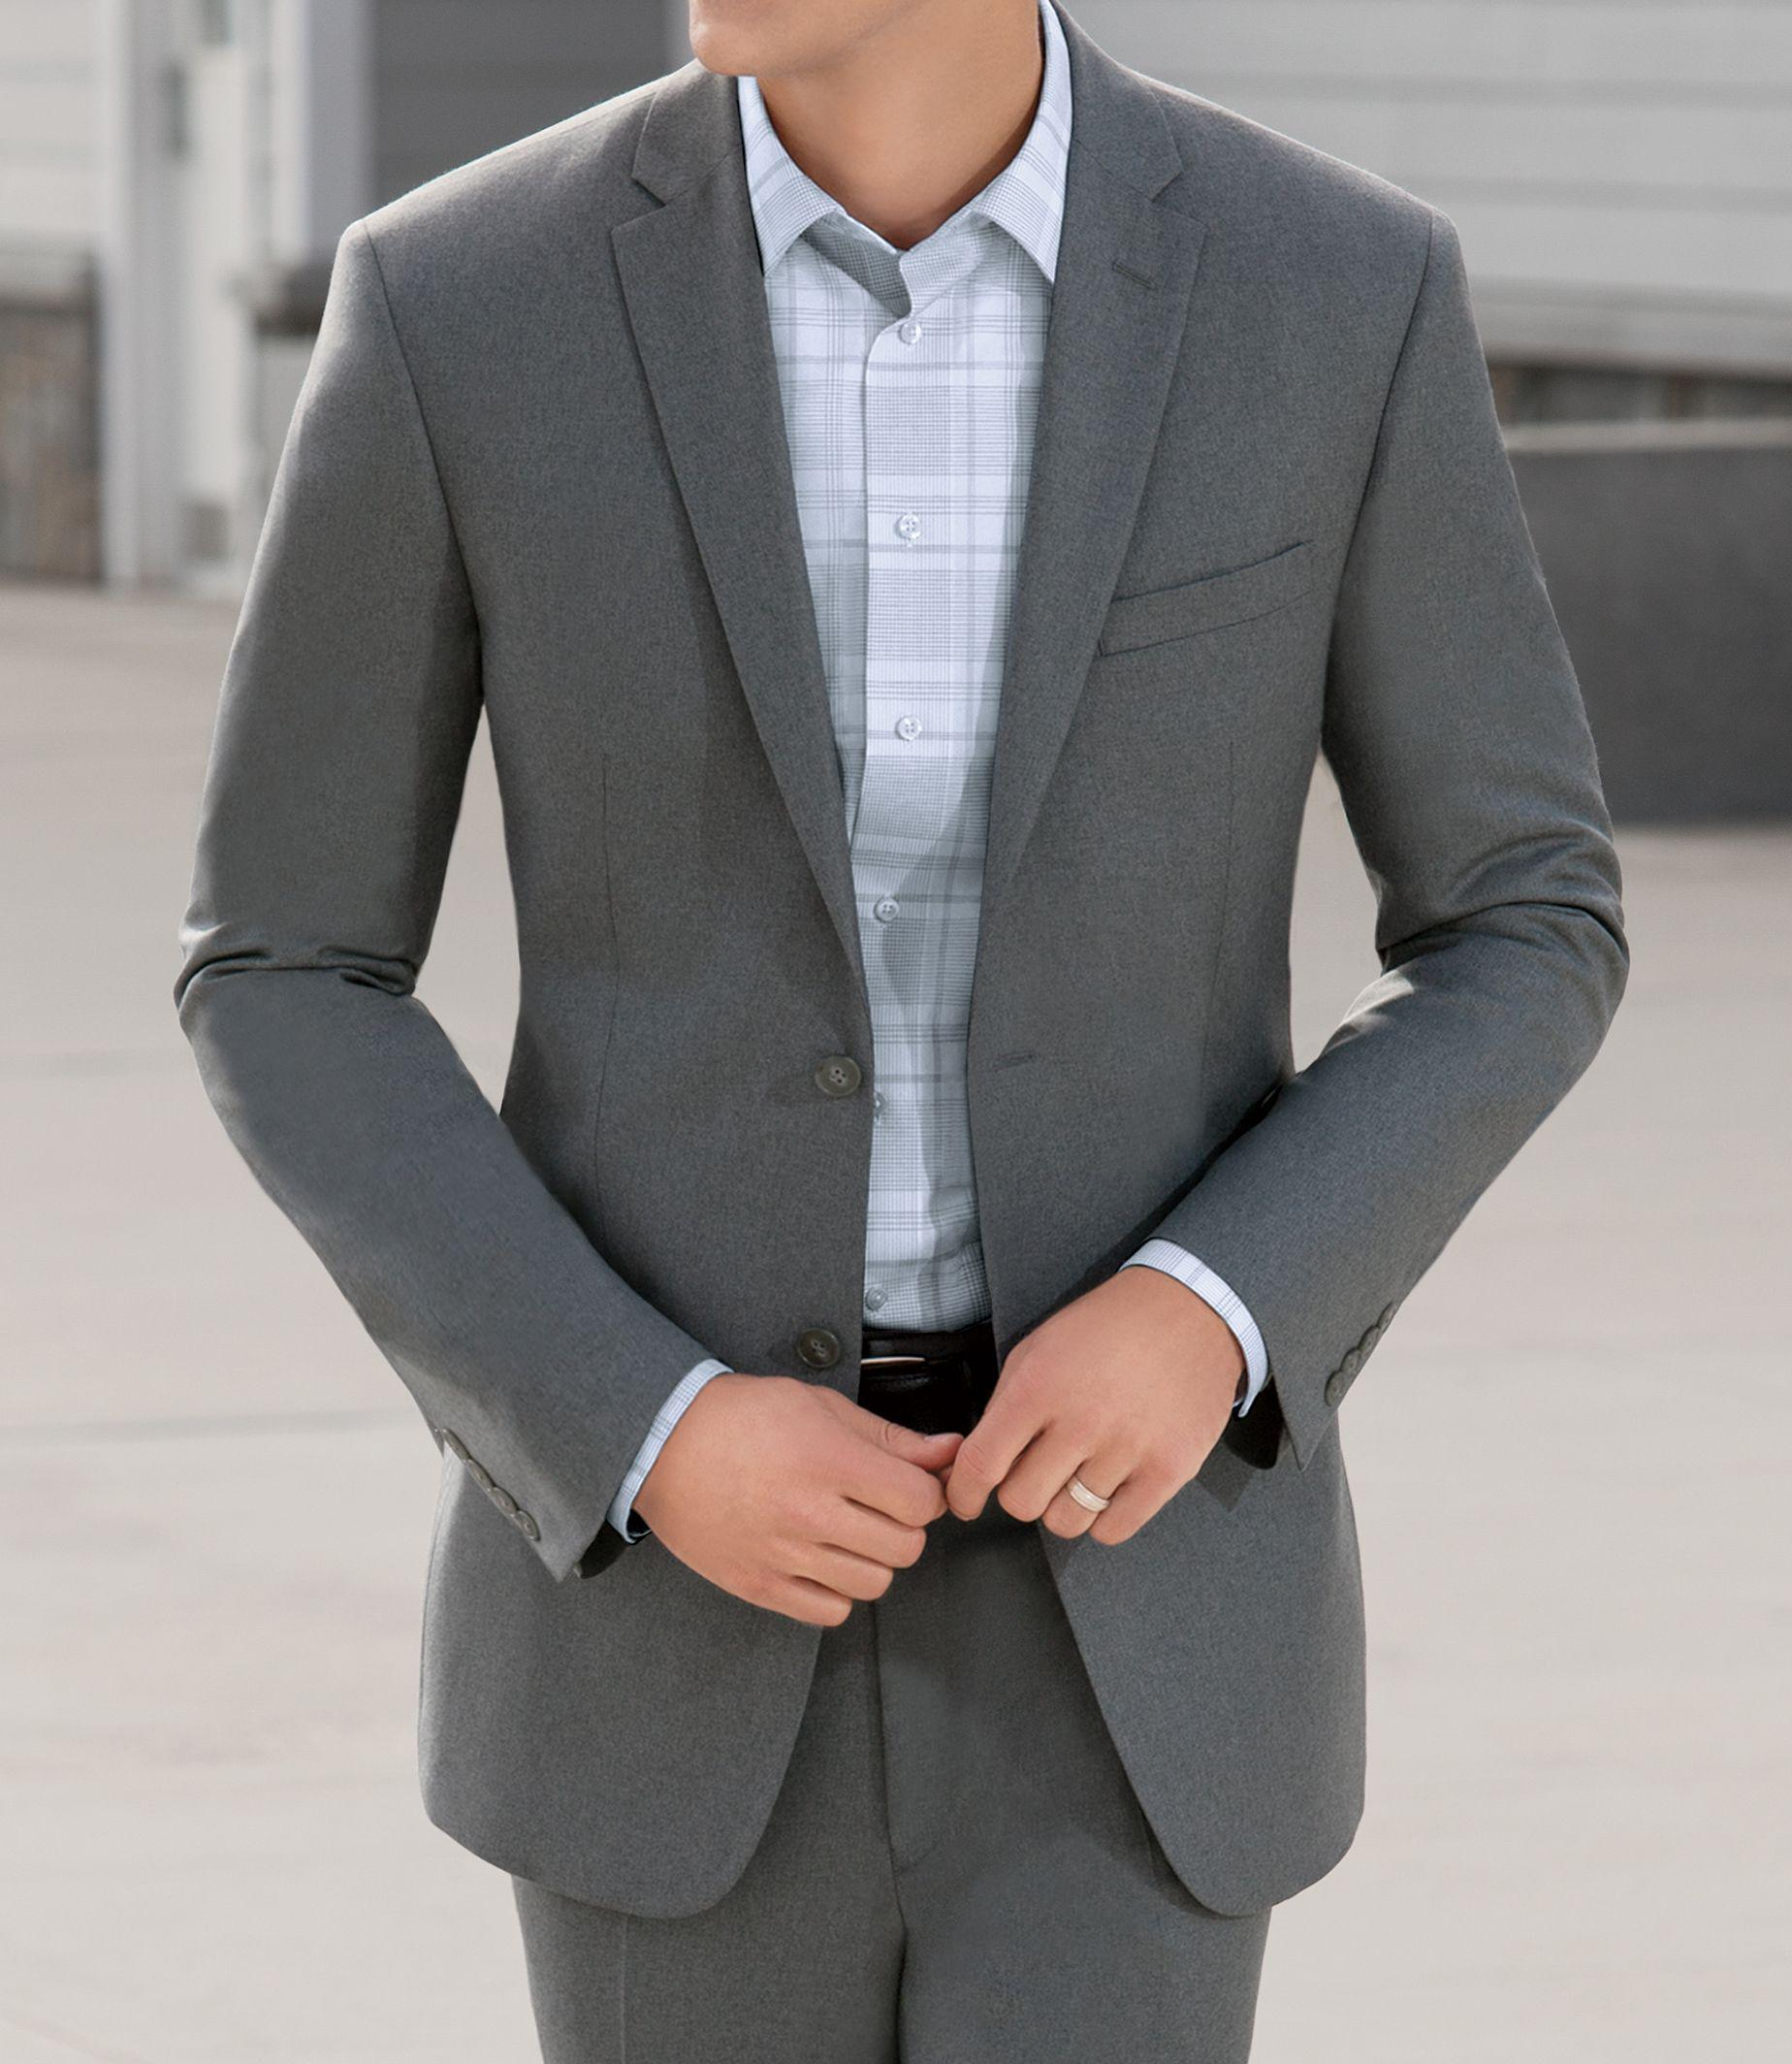 Jos a bank joseph slim fit 2 button suit jacket big and for Jos a bank slim fit vs tailored fit shirts